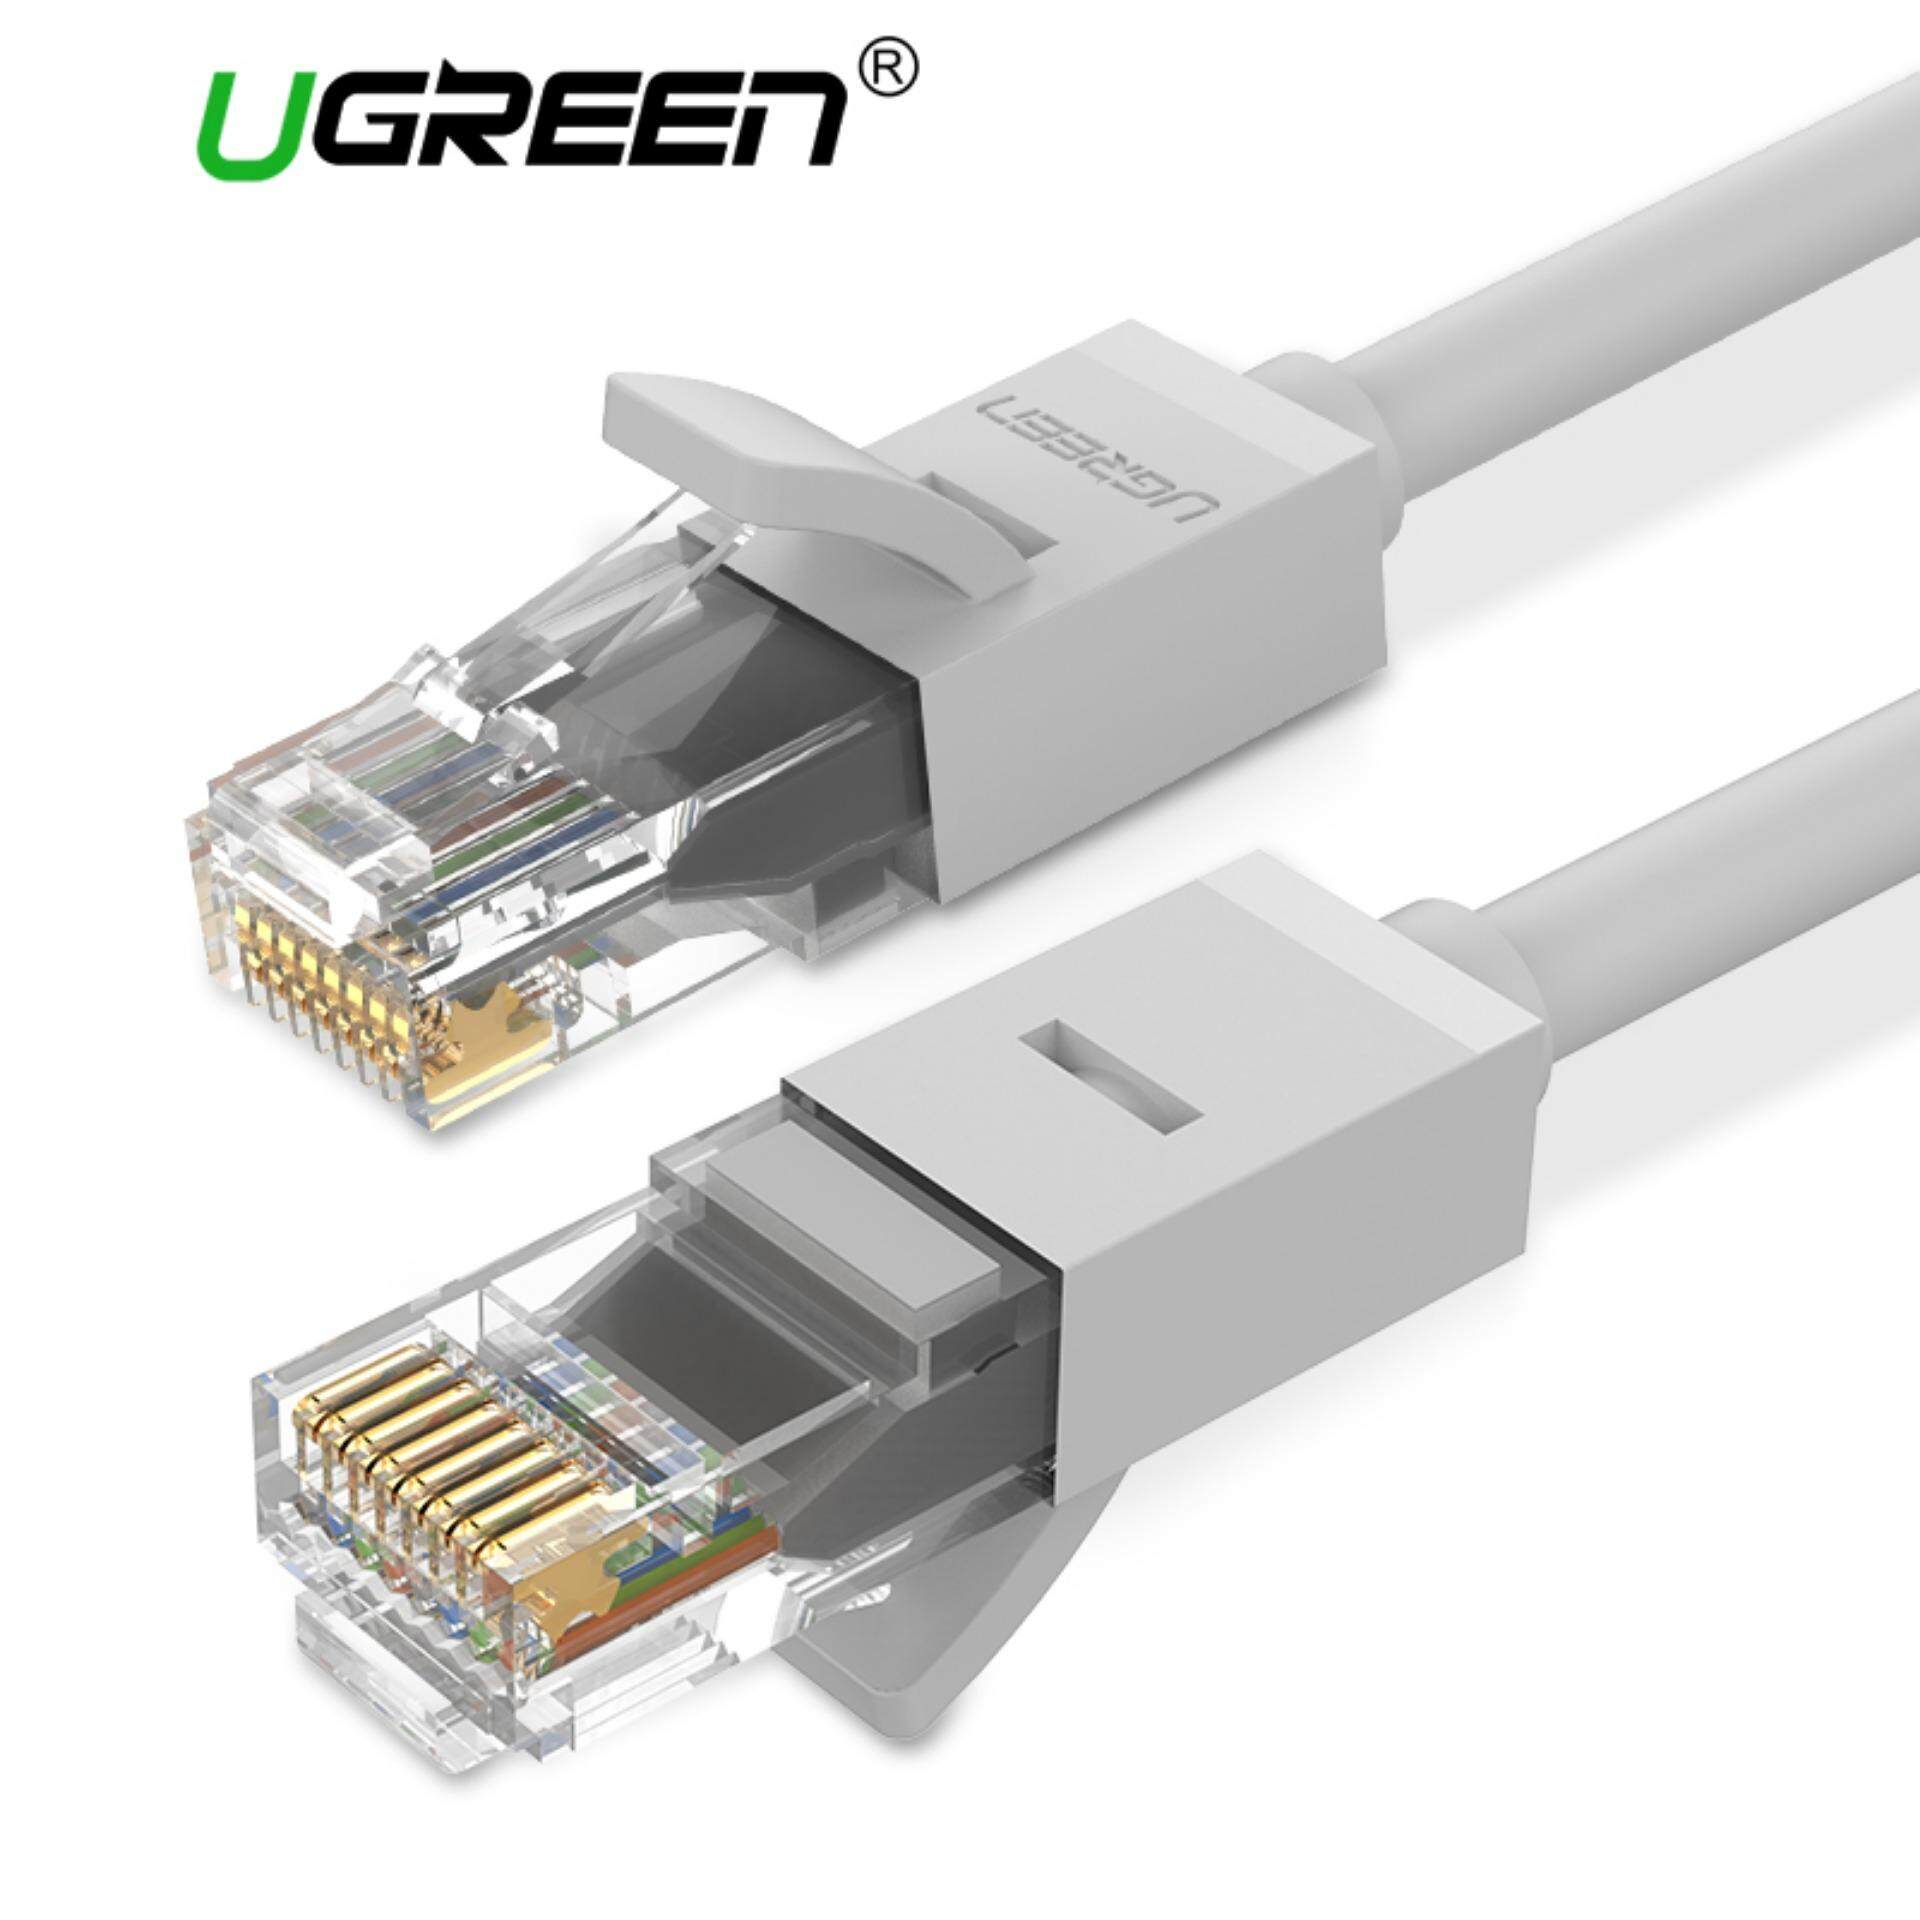 Computer Laptop Ethernet Cables For The Best Prices In Malaysia Cat6 Gigabit Wiring Ugreen 05 Meter Patch Cable Rj45 Network Wire Lan Plug Connector